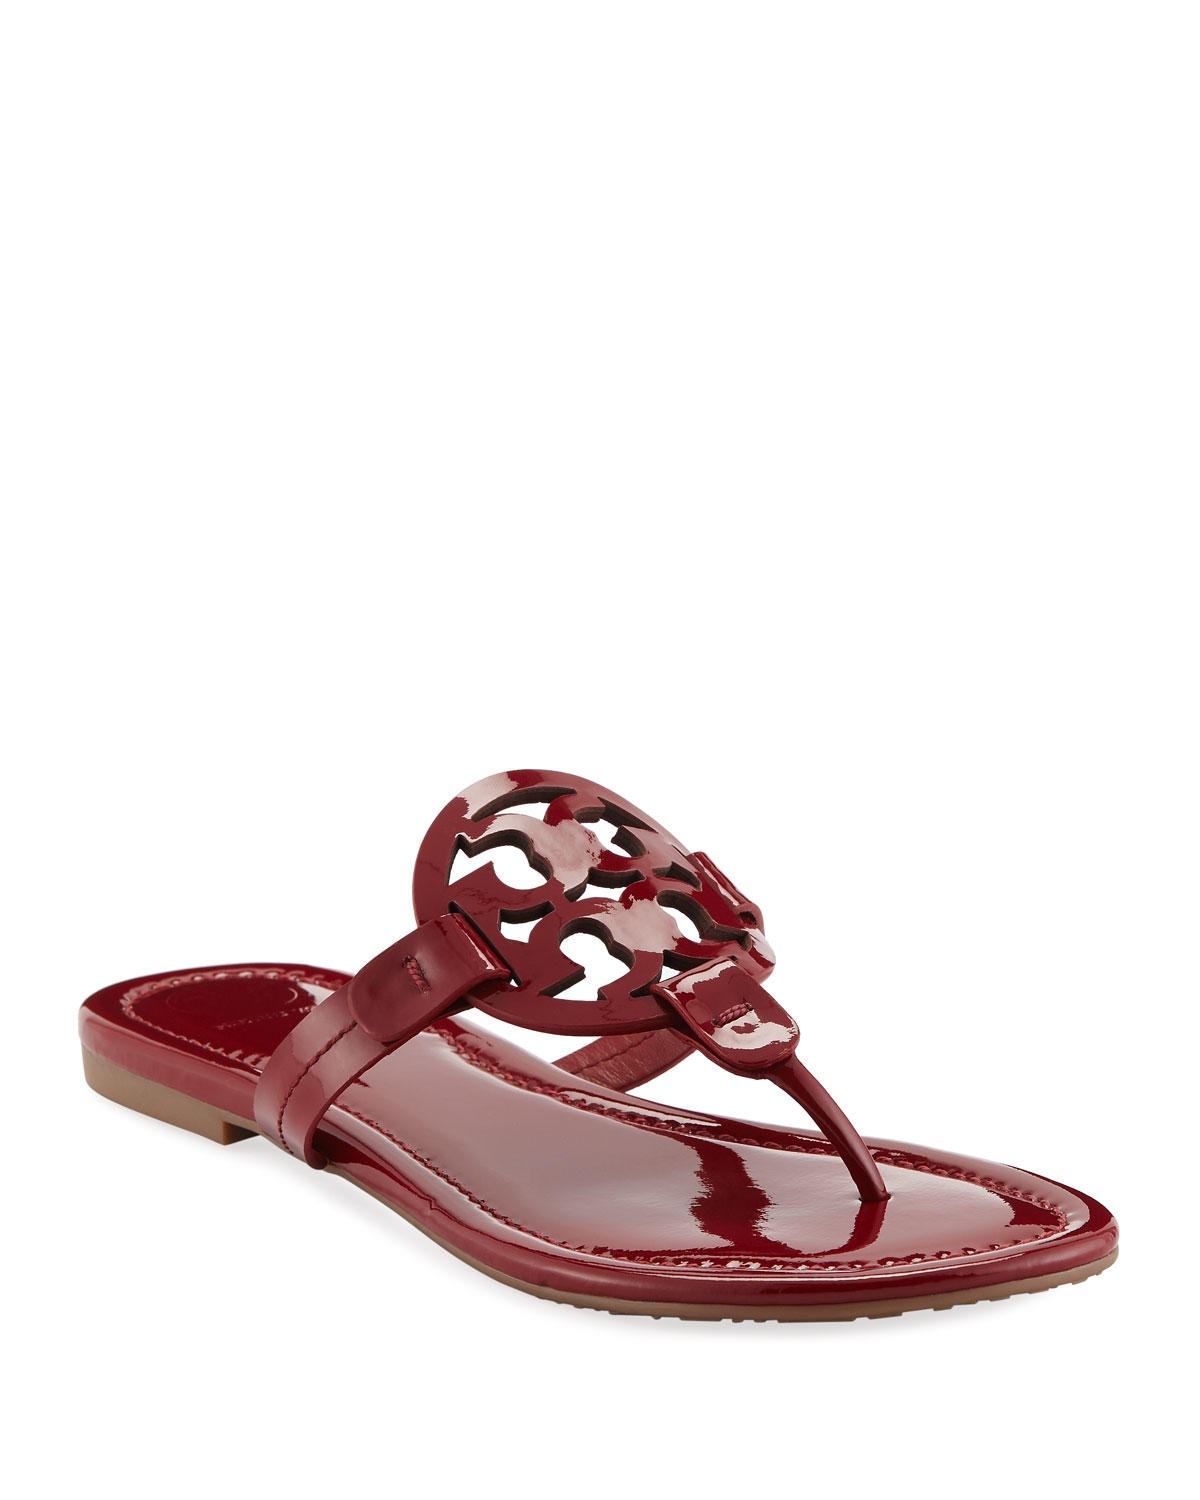 0a0d08f2ce41 Tory Burch Miller Medallion Patent Leather Flat Thong Sandals ...